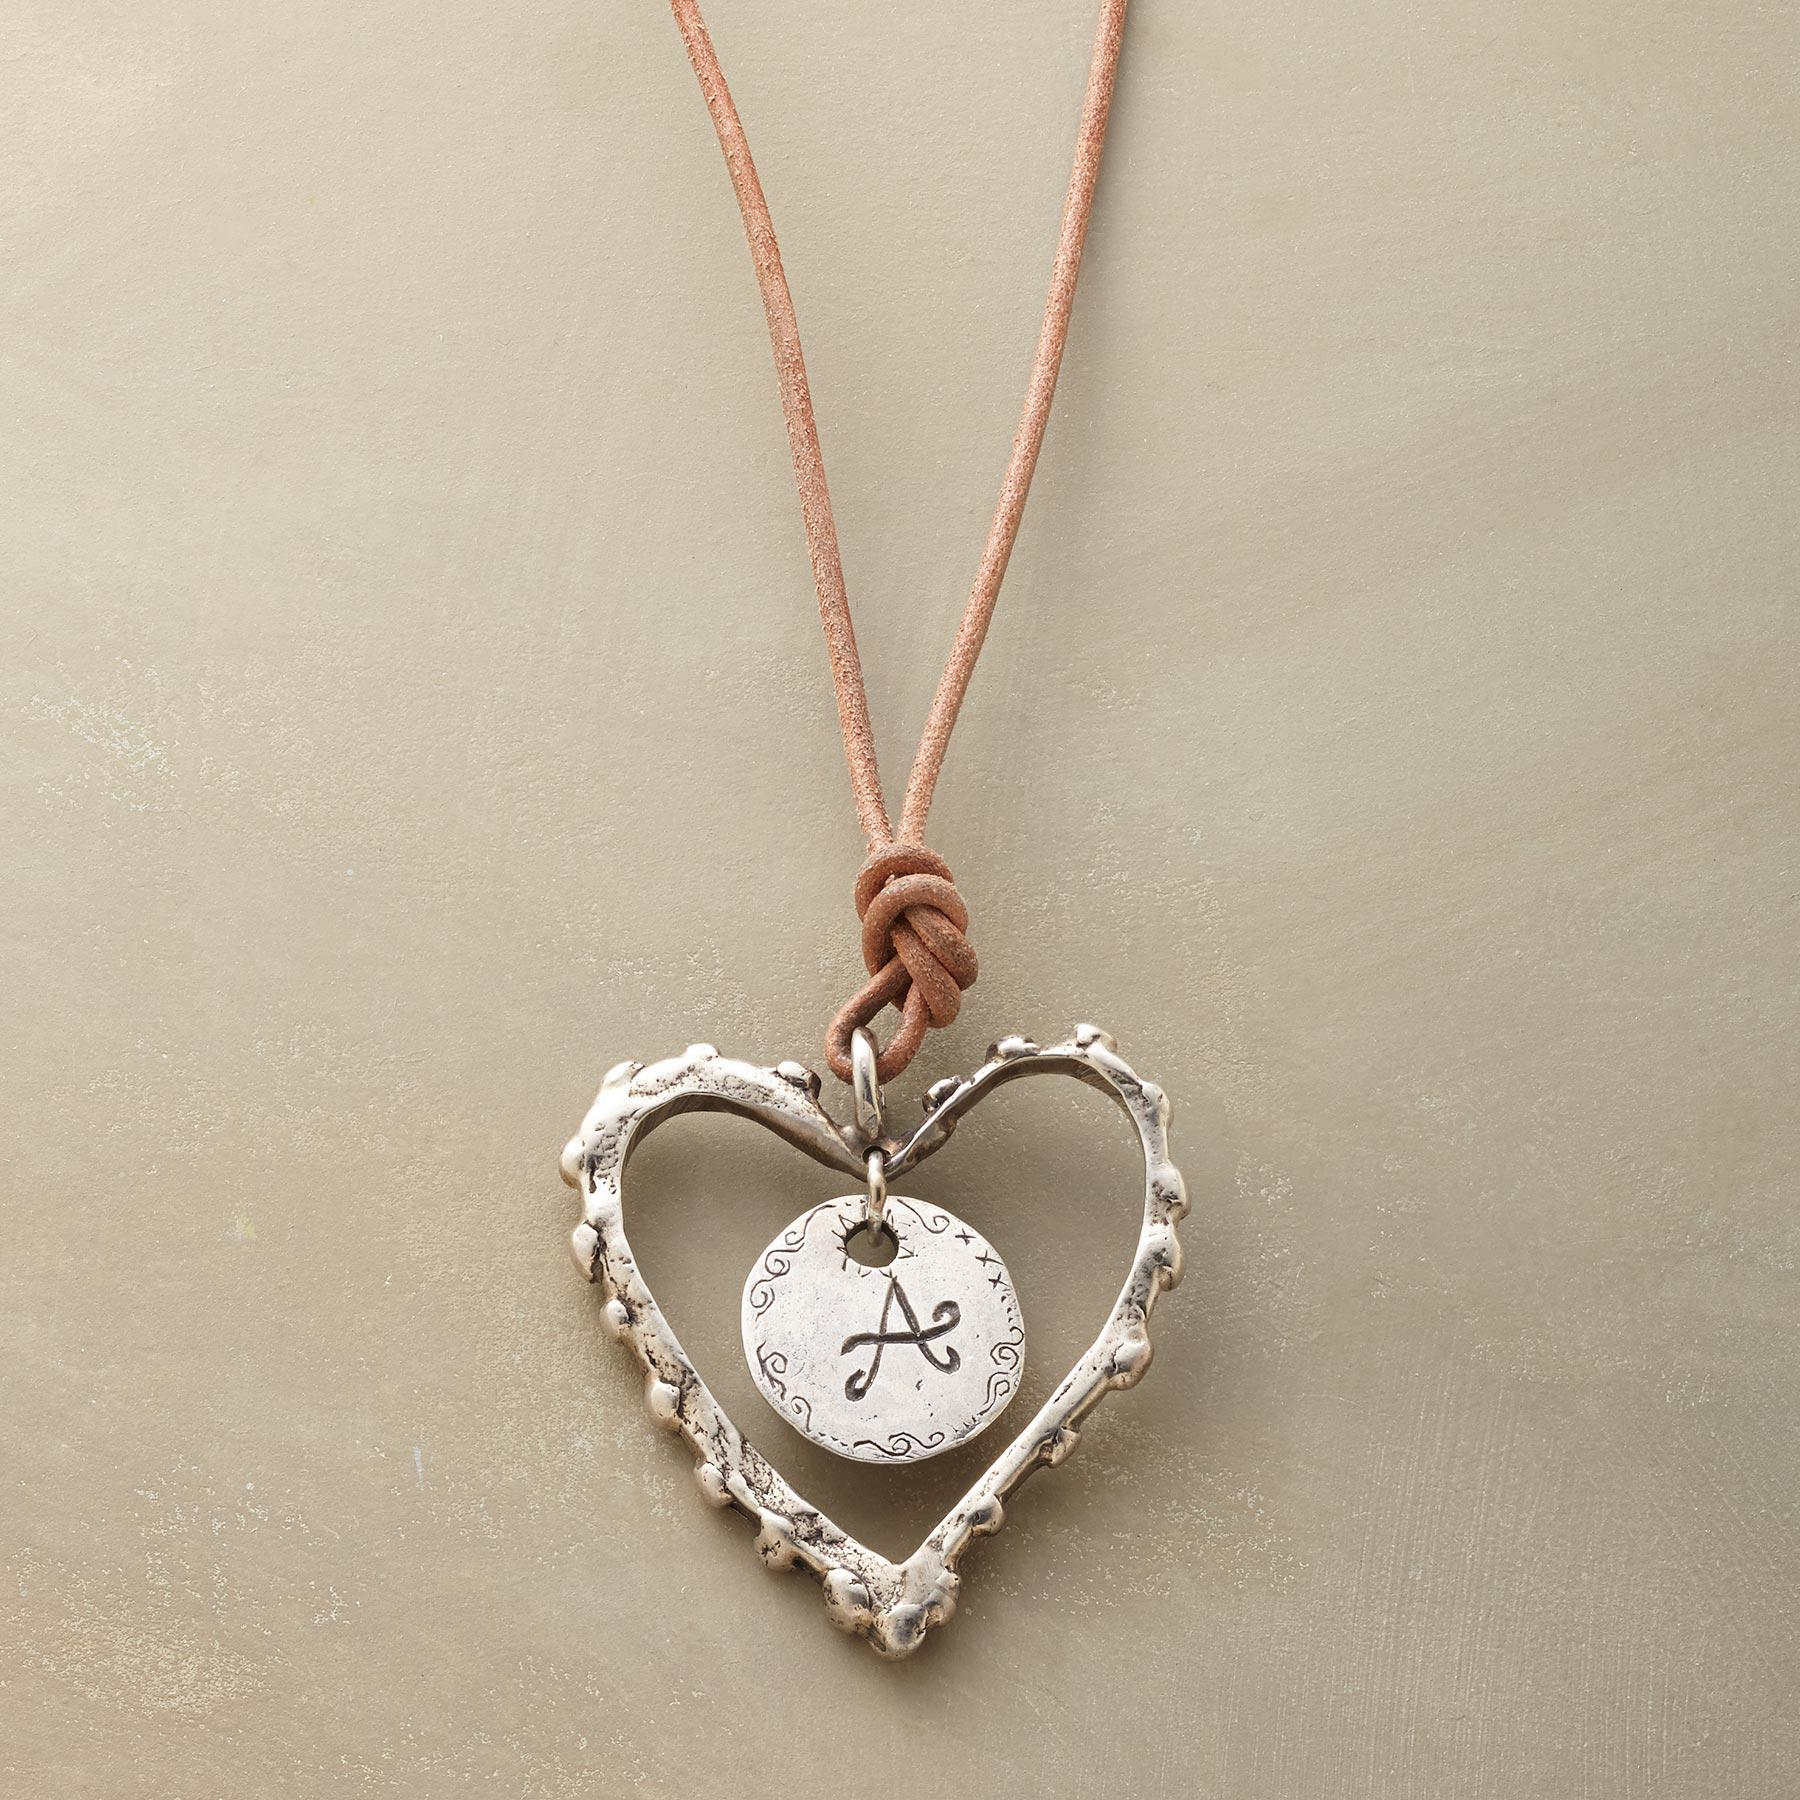 Personalized Love Note Necklace